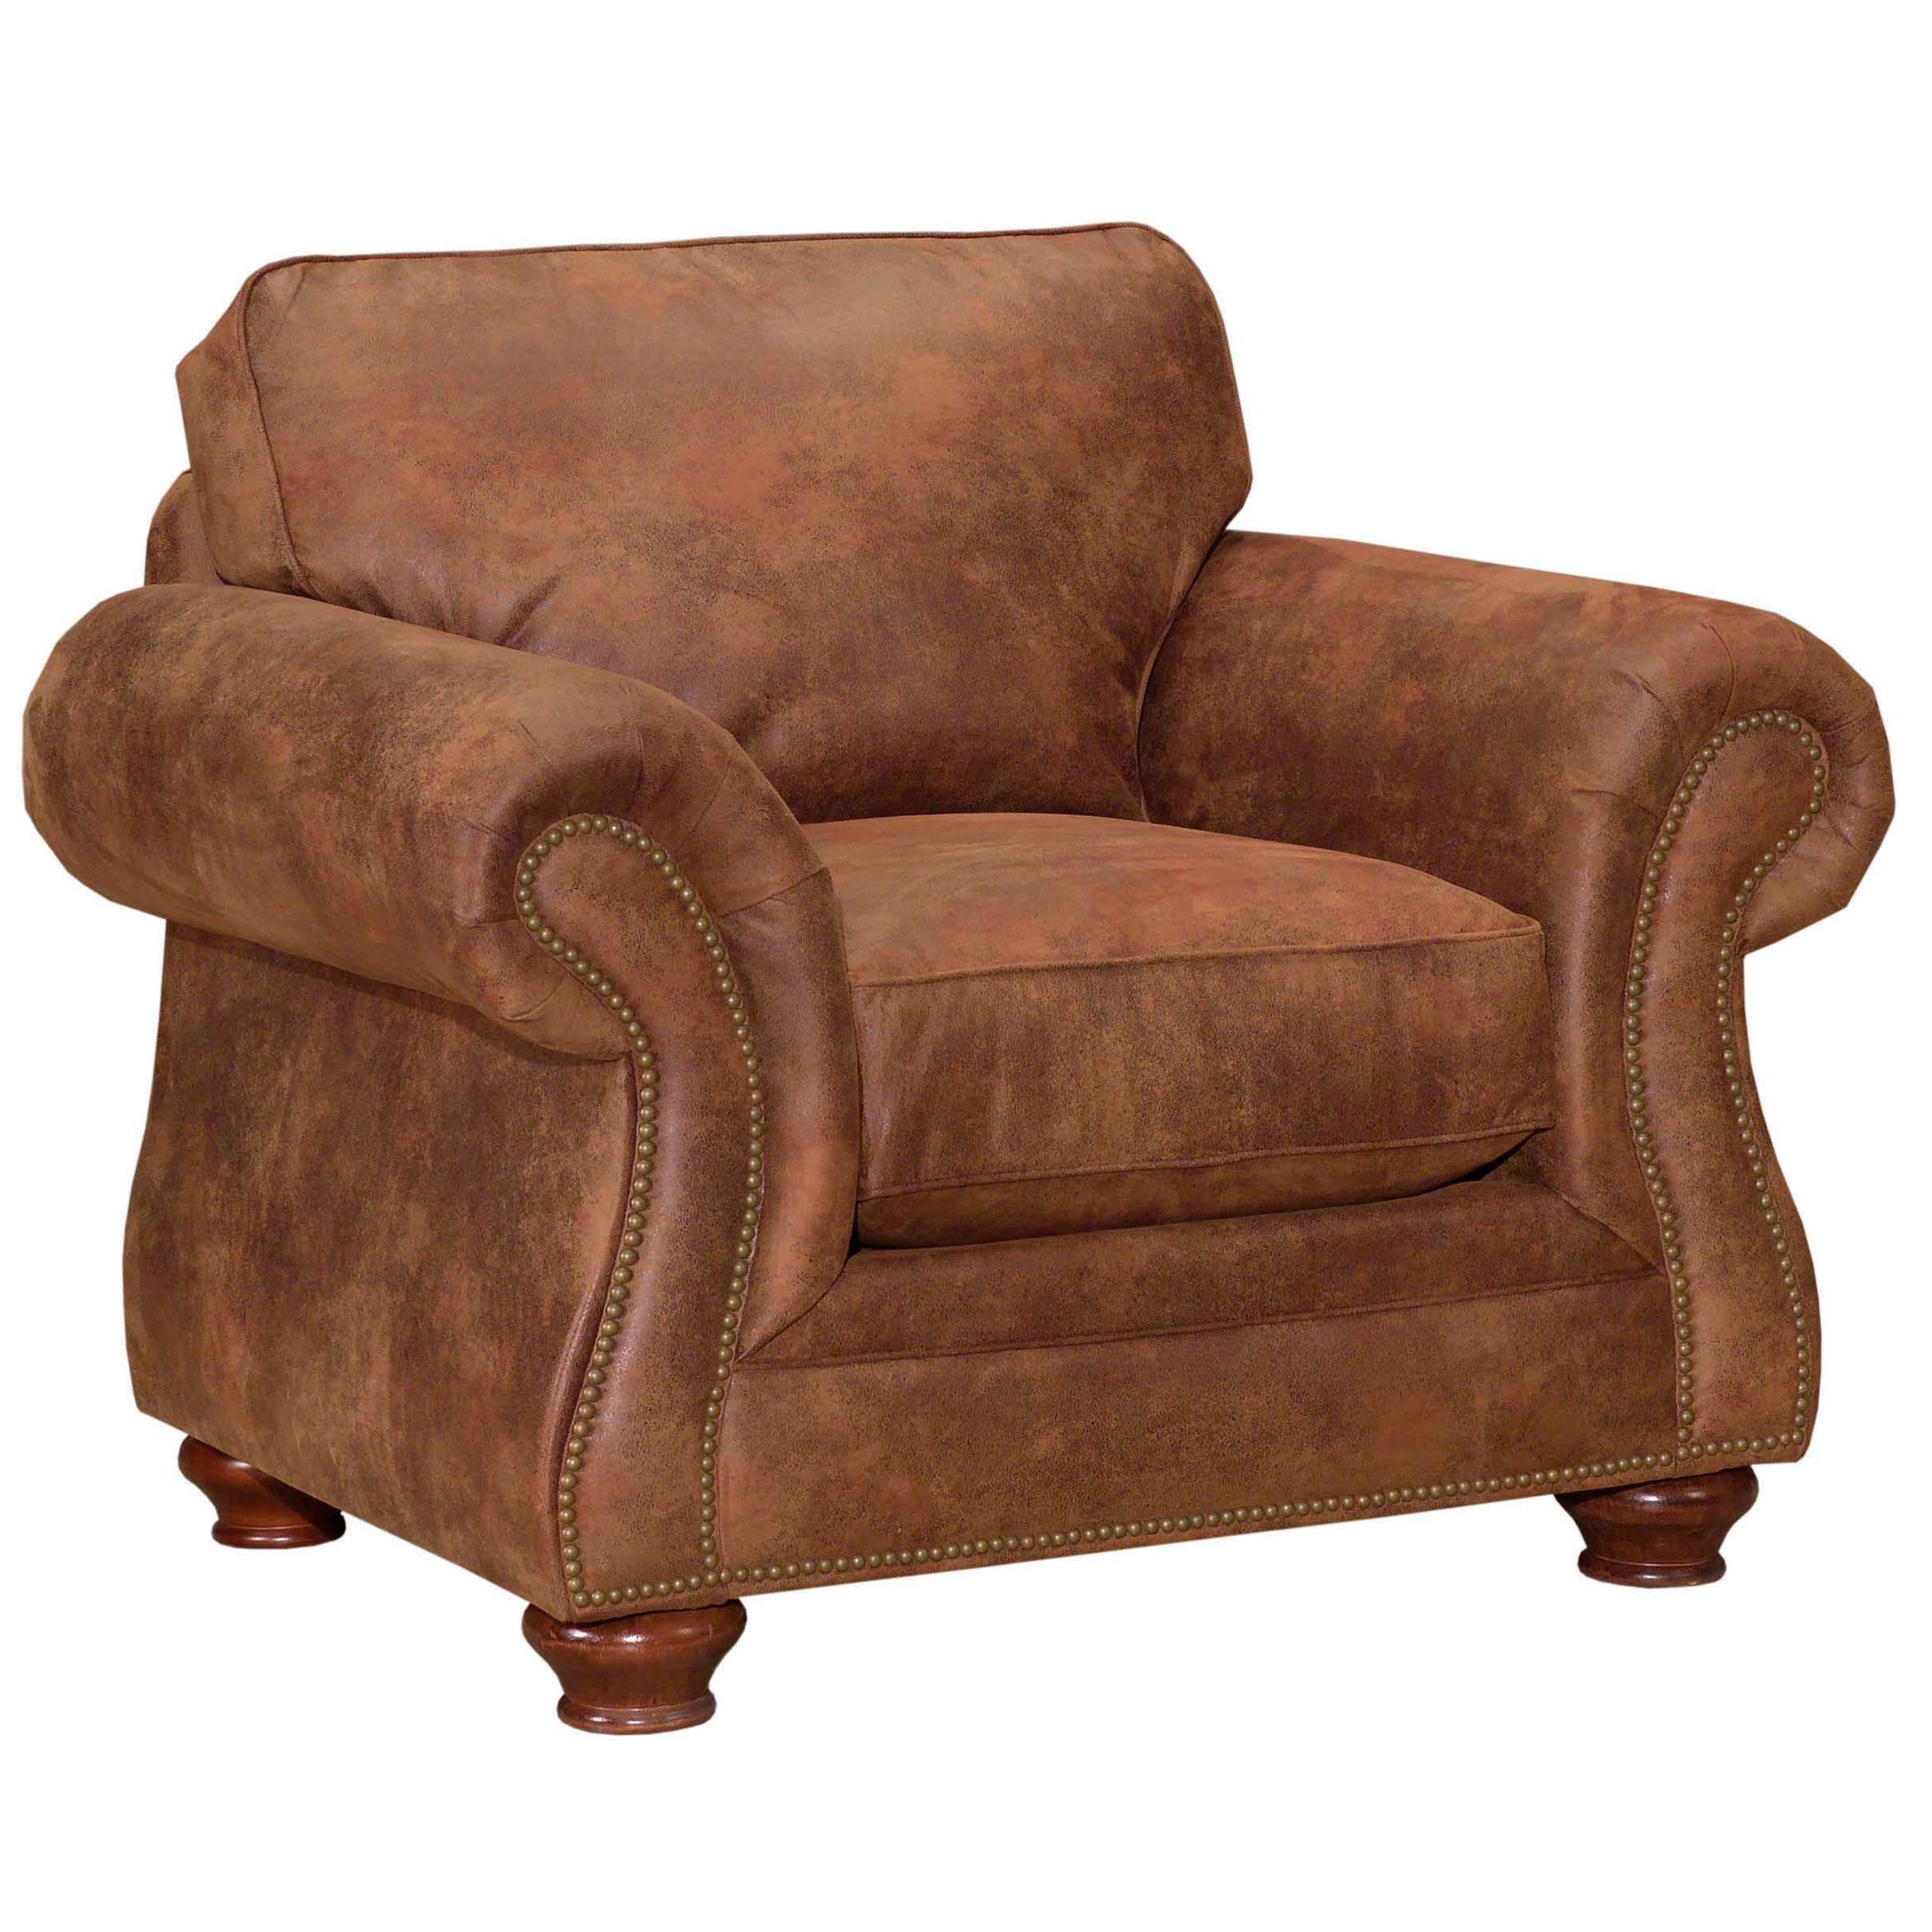 Broyhill Lauren 2 Brown Faux Leather Chair